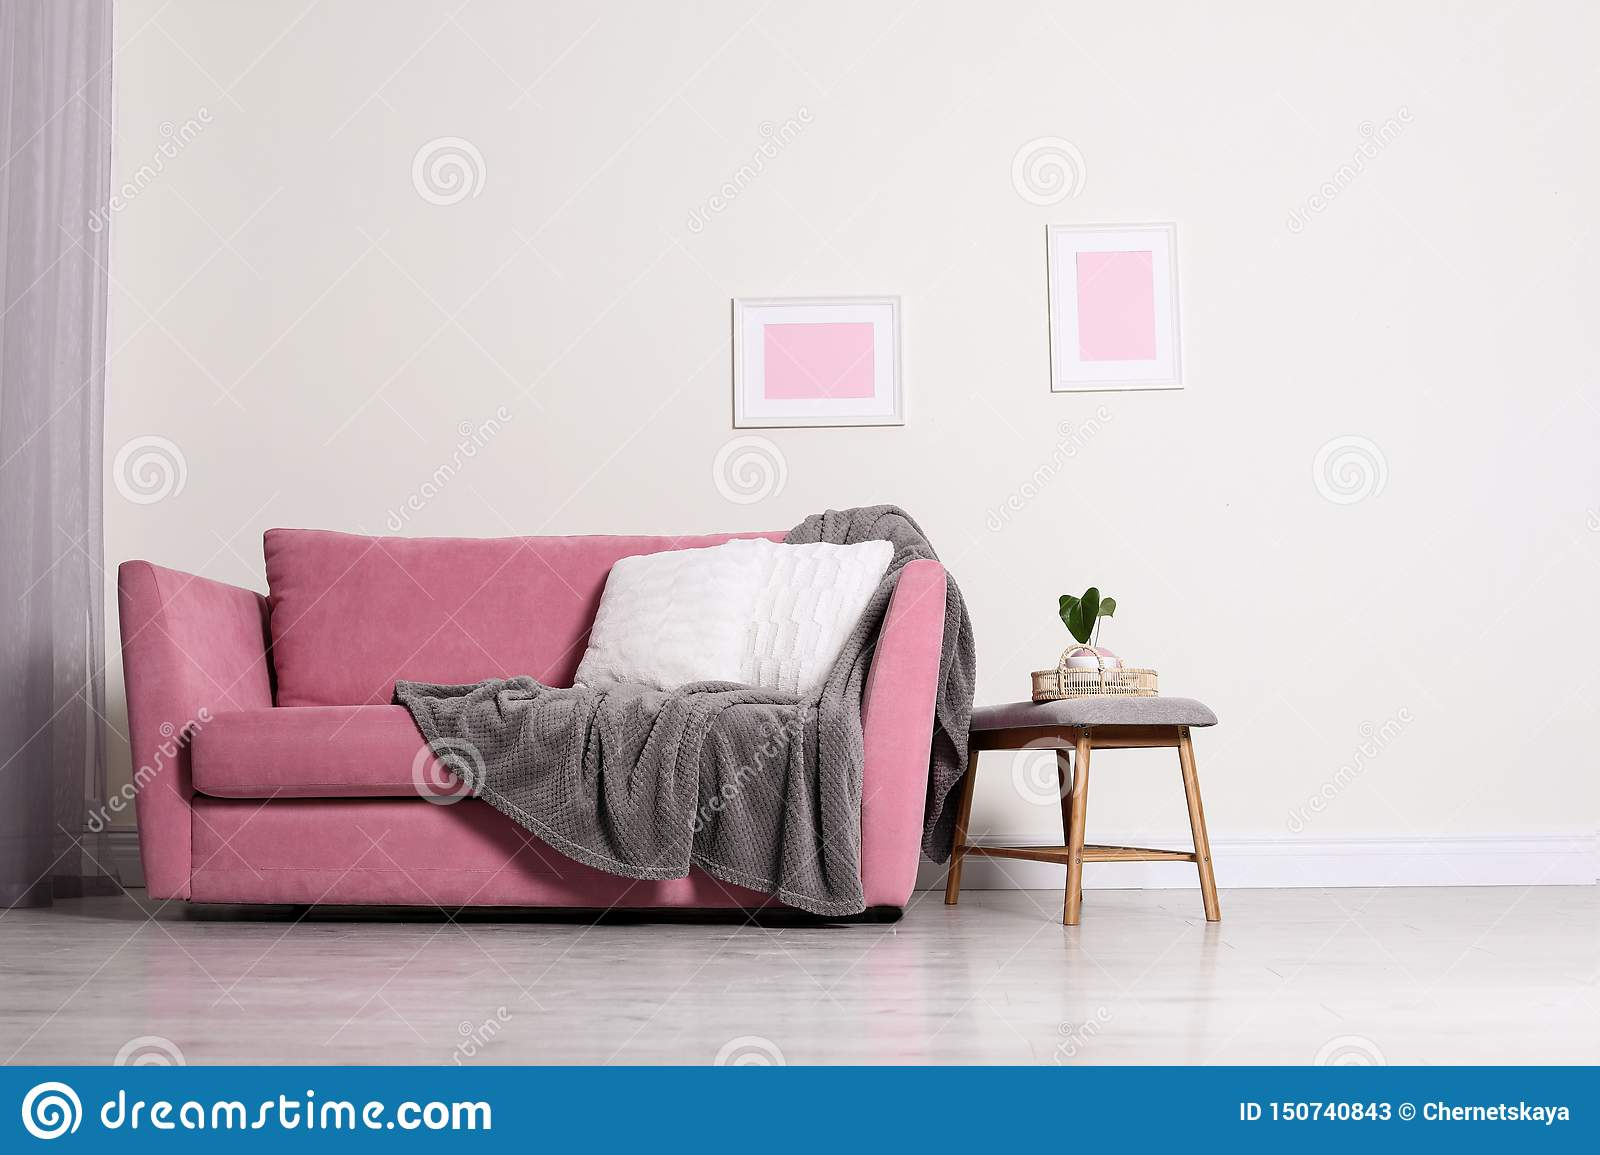 Cozy Living Room Interior With Sofa Pillow And Plaid Near Light Wall Stock Image Image Of Decorative Cushion 150740843